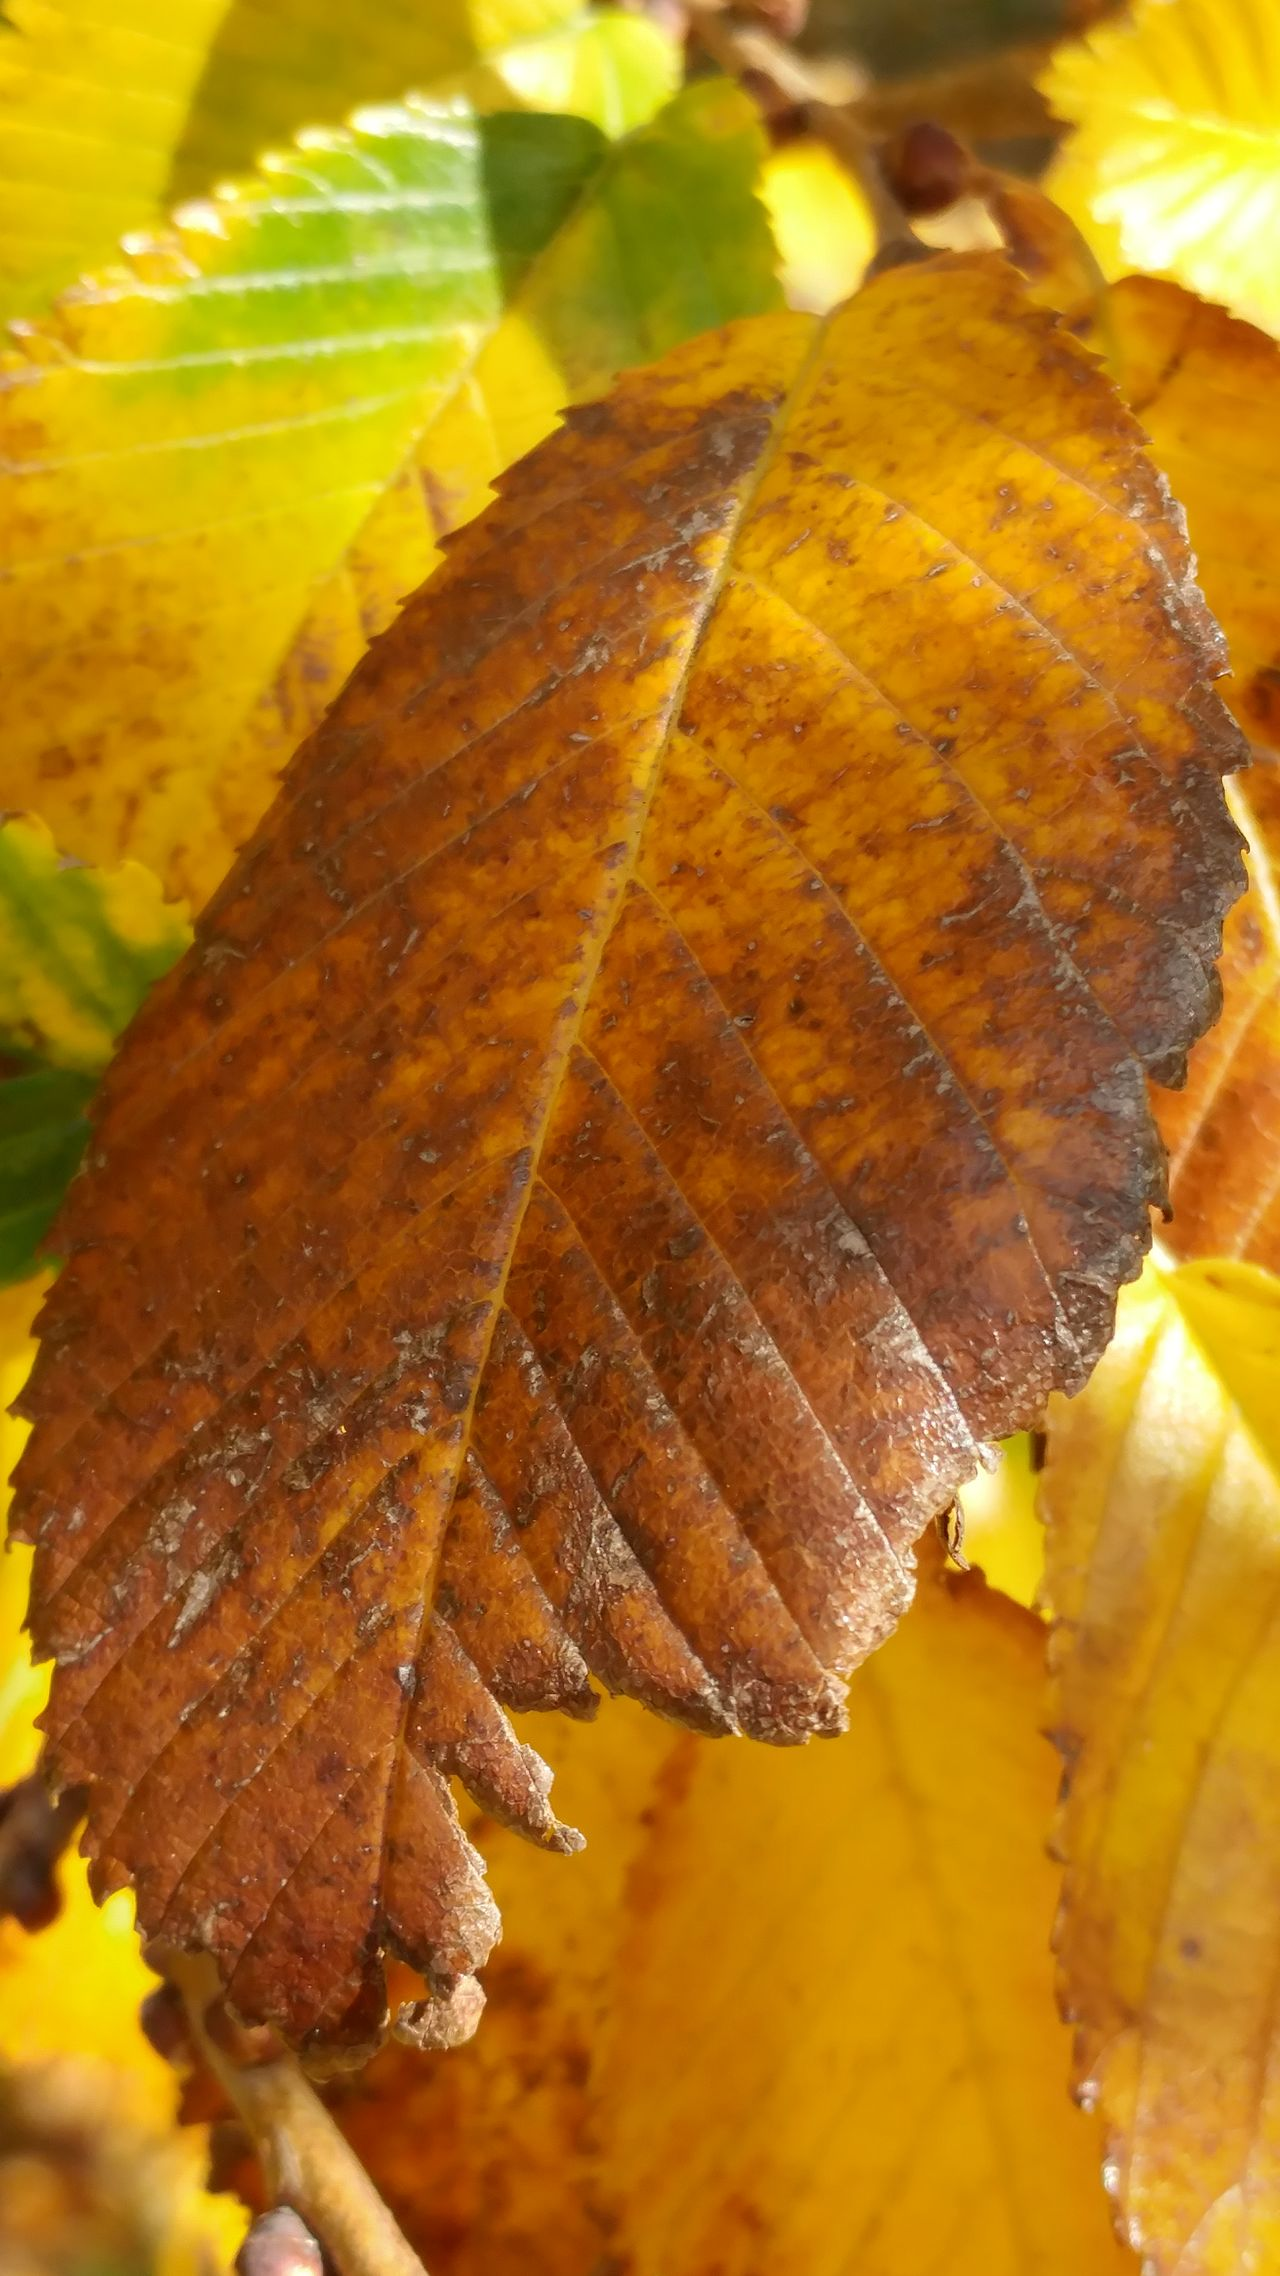 Leaf Close-up Nature Leaf No People Autumn Fragility Beauty In Nature Change Outdoors Maple Leaves Day Autumn Colours